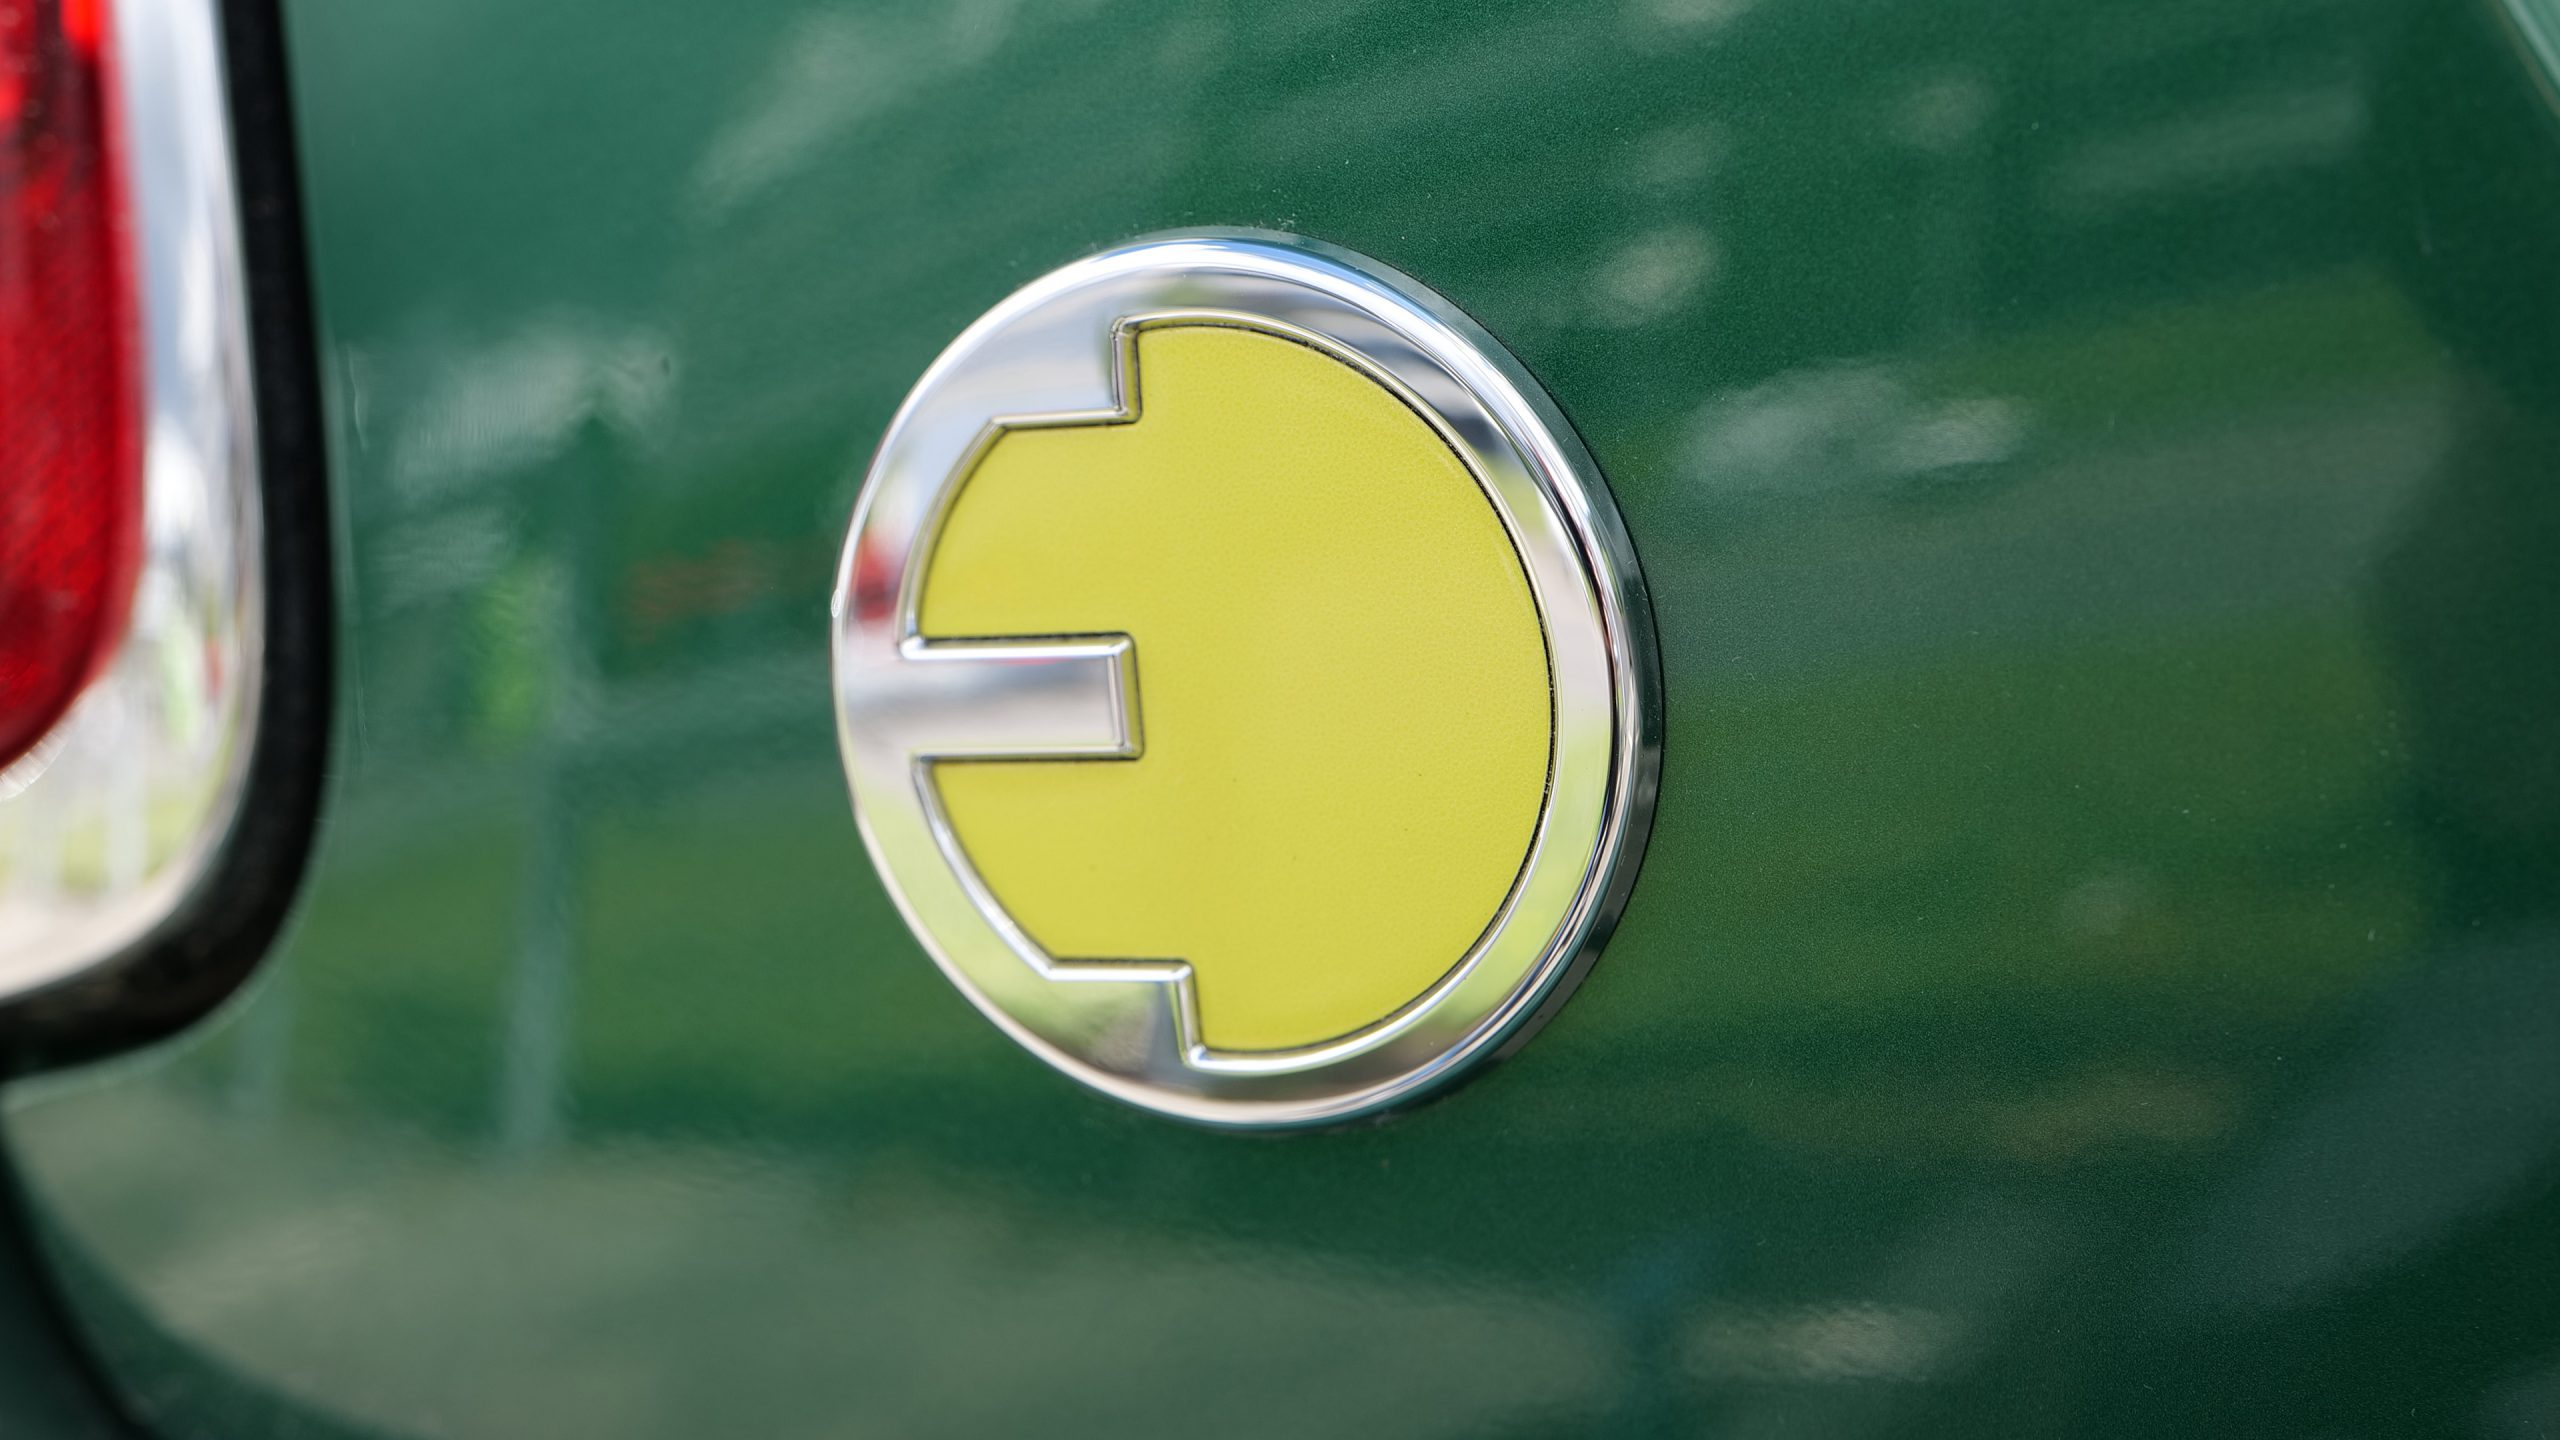 Mini Cooper Electric logo